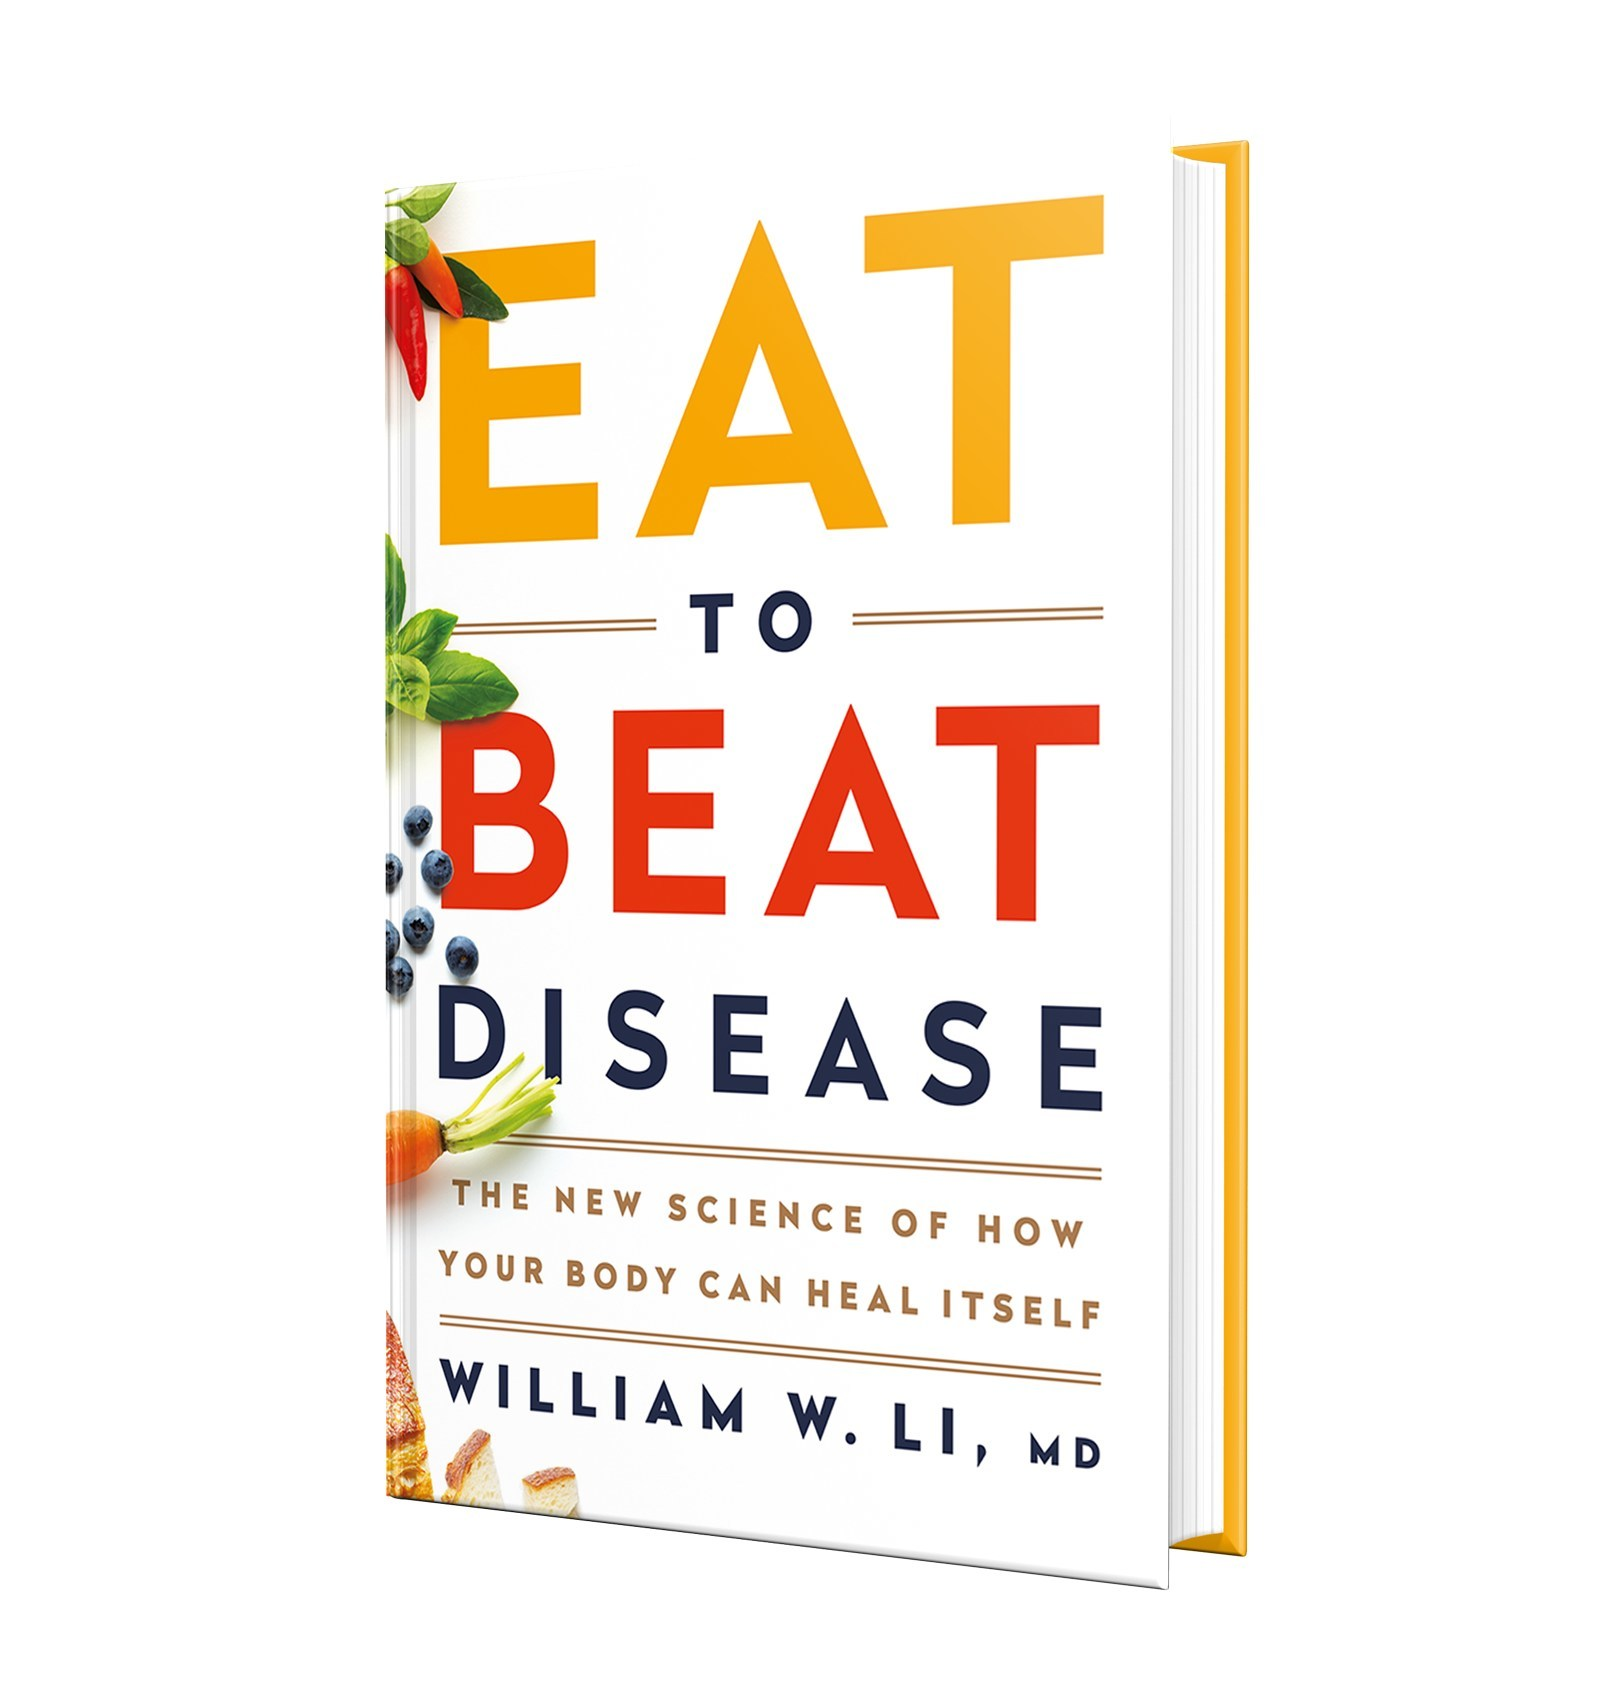 EAT TO BEAT DISEASE gives readers a fascinating view of the body's health defense systems, which span angiogenesis, regeneration, microbiome, DNA protection, and immunity. Each system helps the body resist disease and can be activated by foods. https://amzn.to/2Tn0kcM